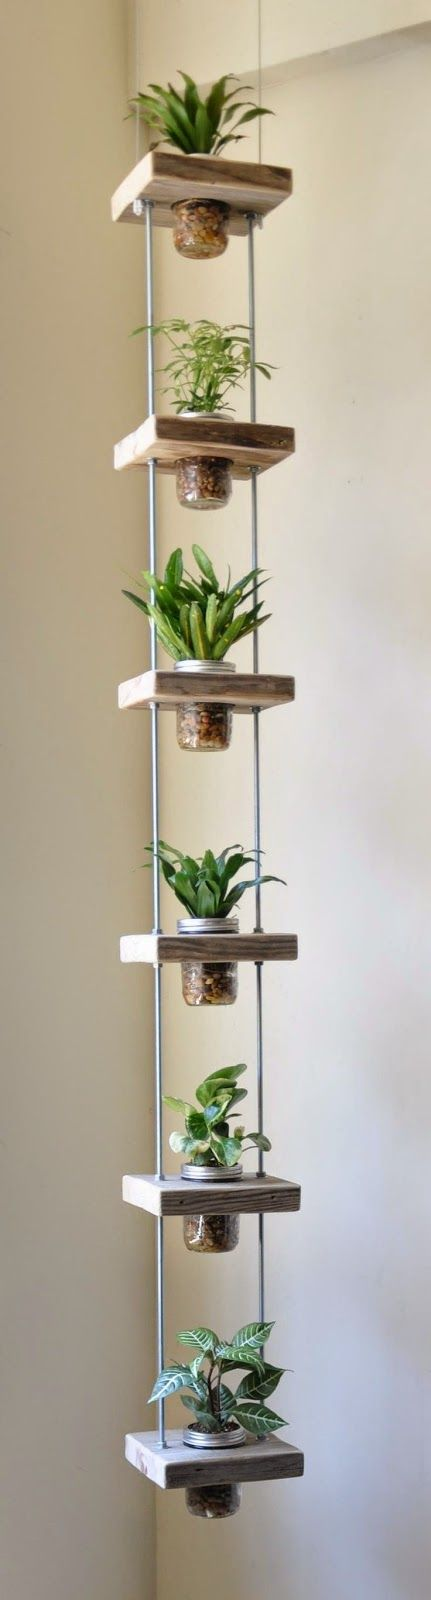 Vertical garden perfect for small balconies, hang them up on a Balco balcony www.balco.eu